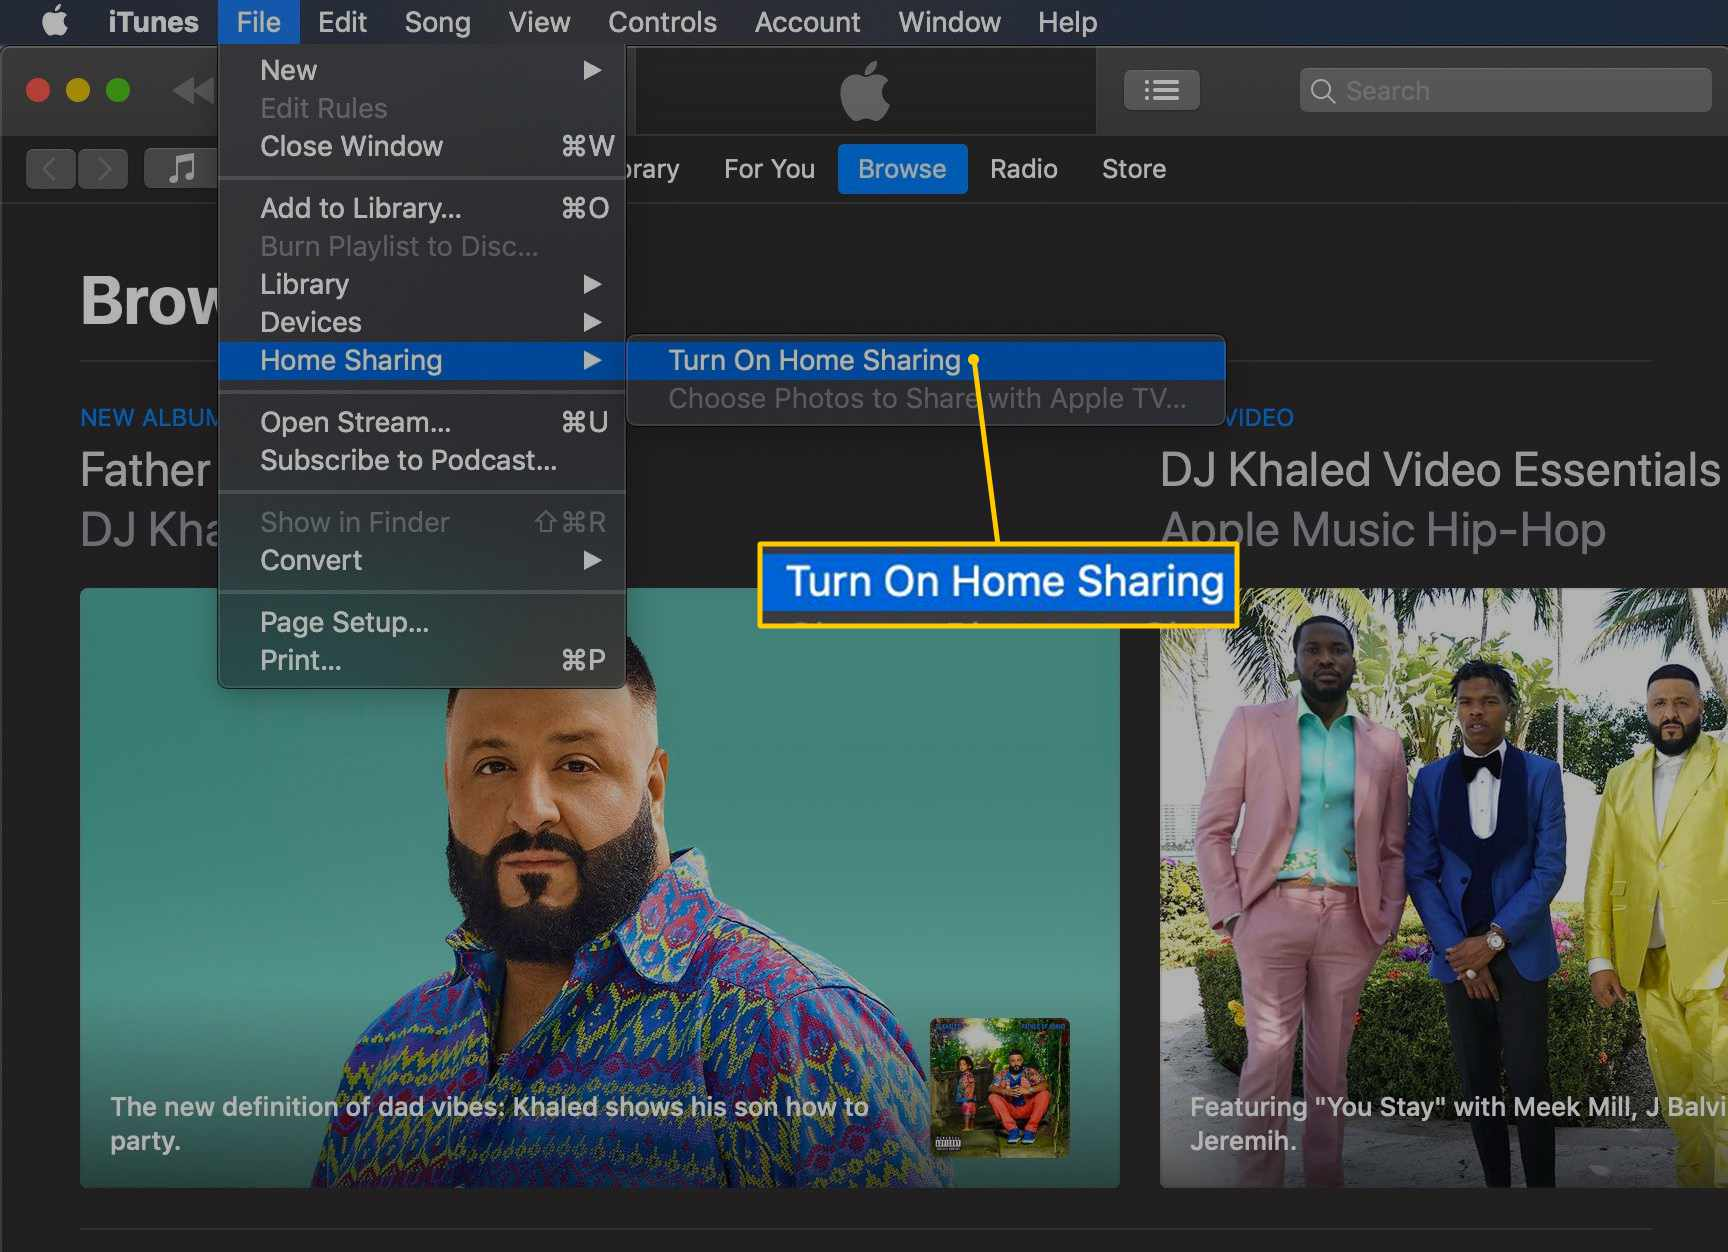 How to Set Up and Use Home Sharing in iTunes